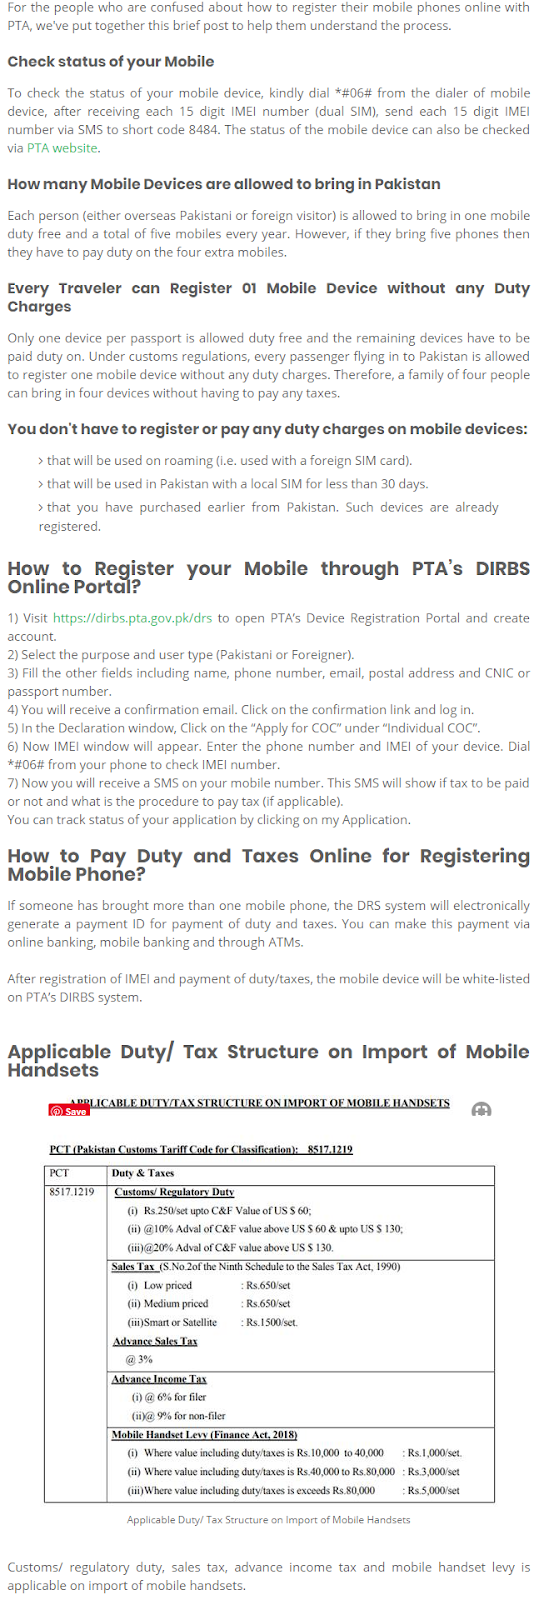 How to Register your Mobile Phone Online with PTA ~ Helping